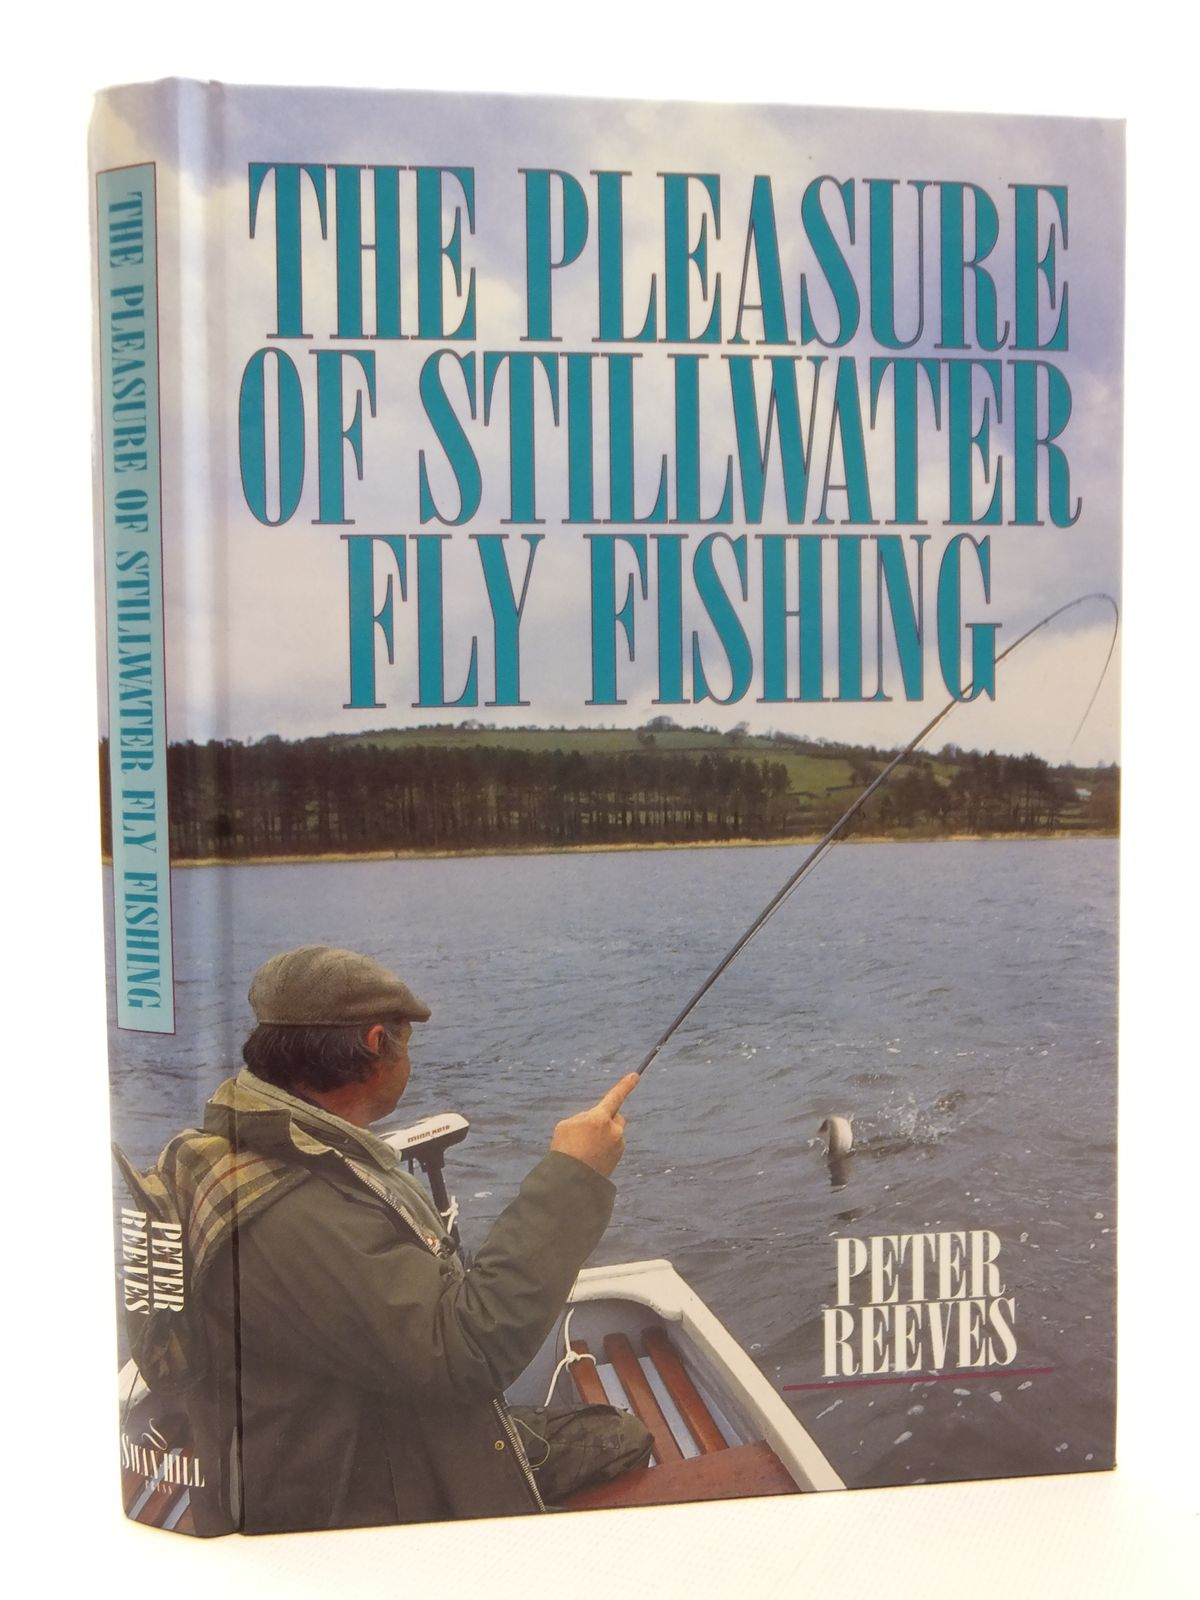 Photo of THE PLEASURE OF STILLWATER FLY FISHING written by Reeves, Peter published by Swan Hill Press (STOCK CODE: 2122894)  for sale by Stella & Rose's Books